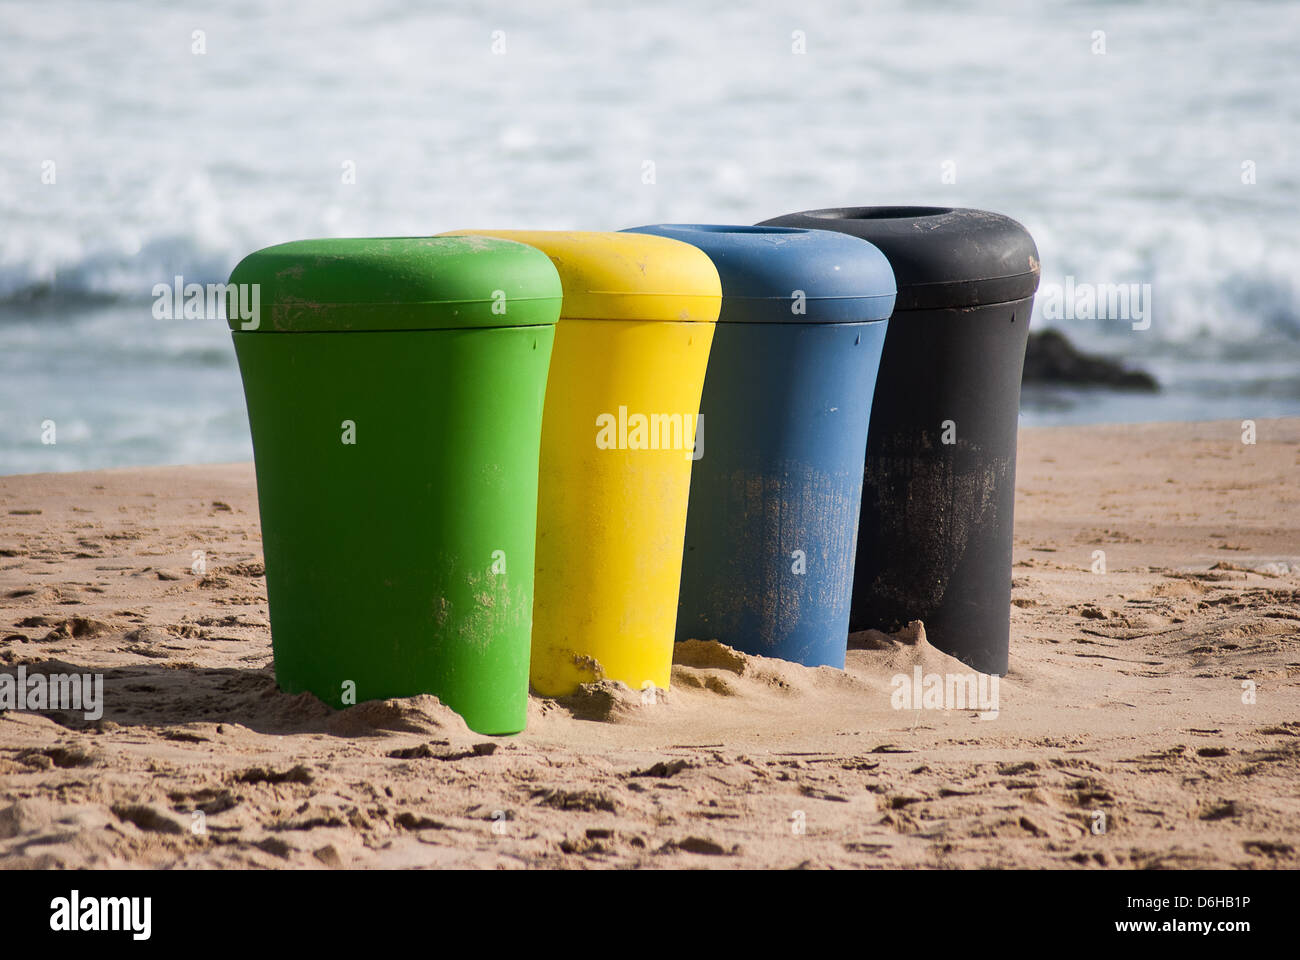 Rubbish bins on Cascais beach Portugal - Stock Image